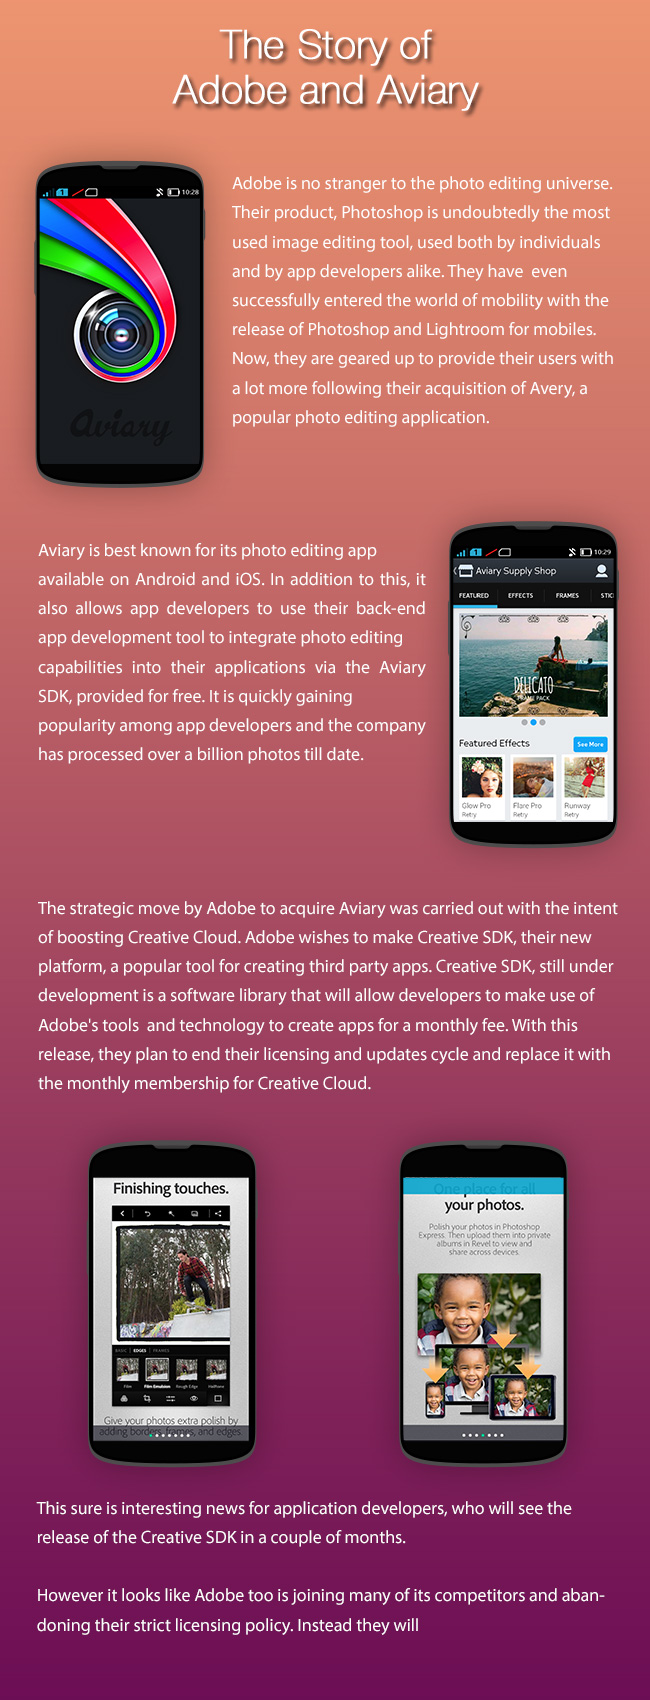 The Story of Adobe and Aviary